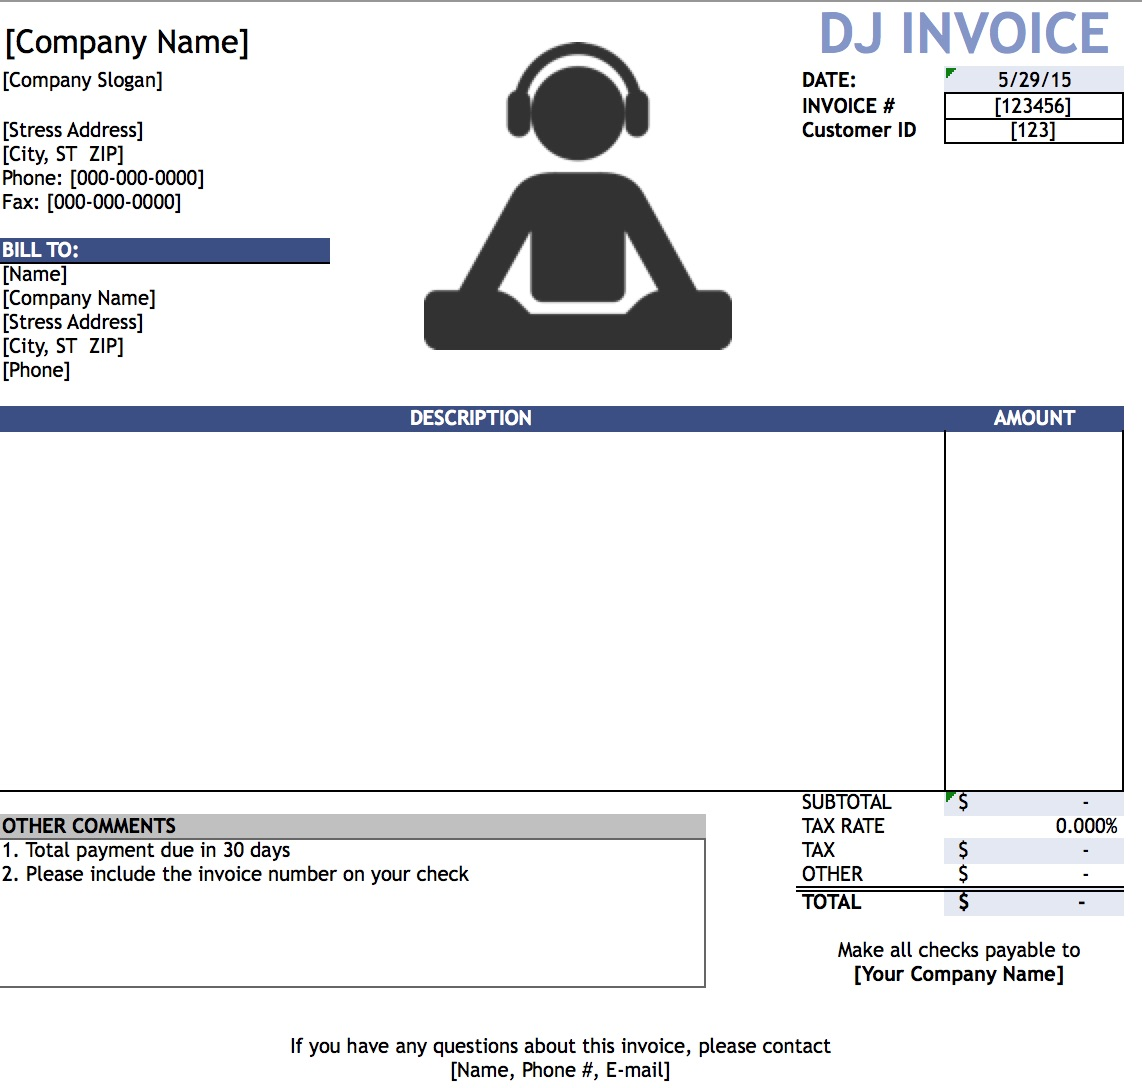 Free DJ Disc Jockey Invoice Template Excel PDF Word Doc - Microsoft excel invoice template free download for service business